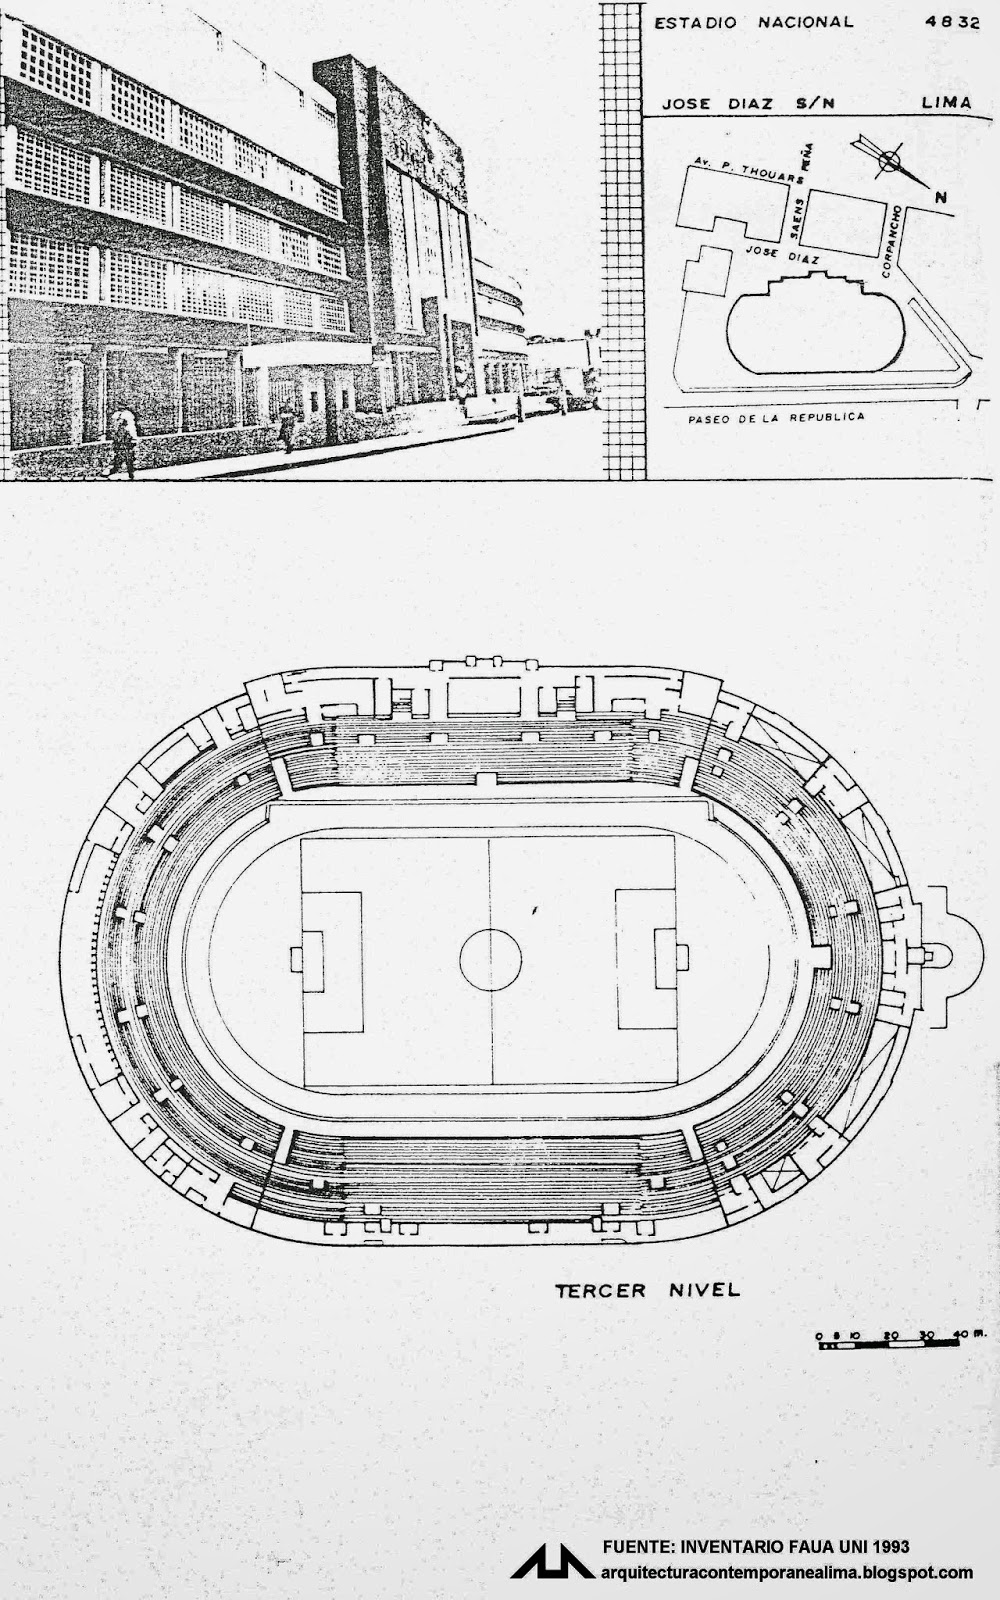 Arquitectura contemporanea de lima 4832 estadio nacional for Puerta 4 estadio nacional